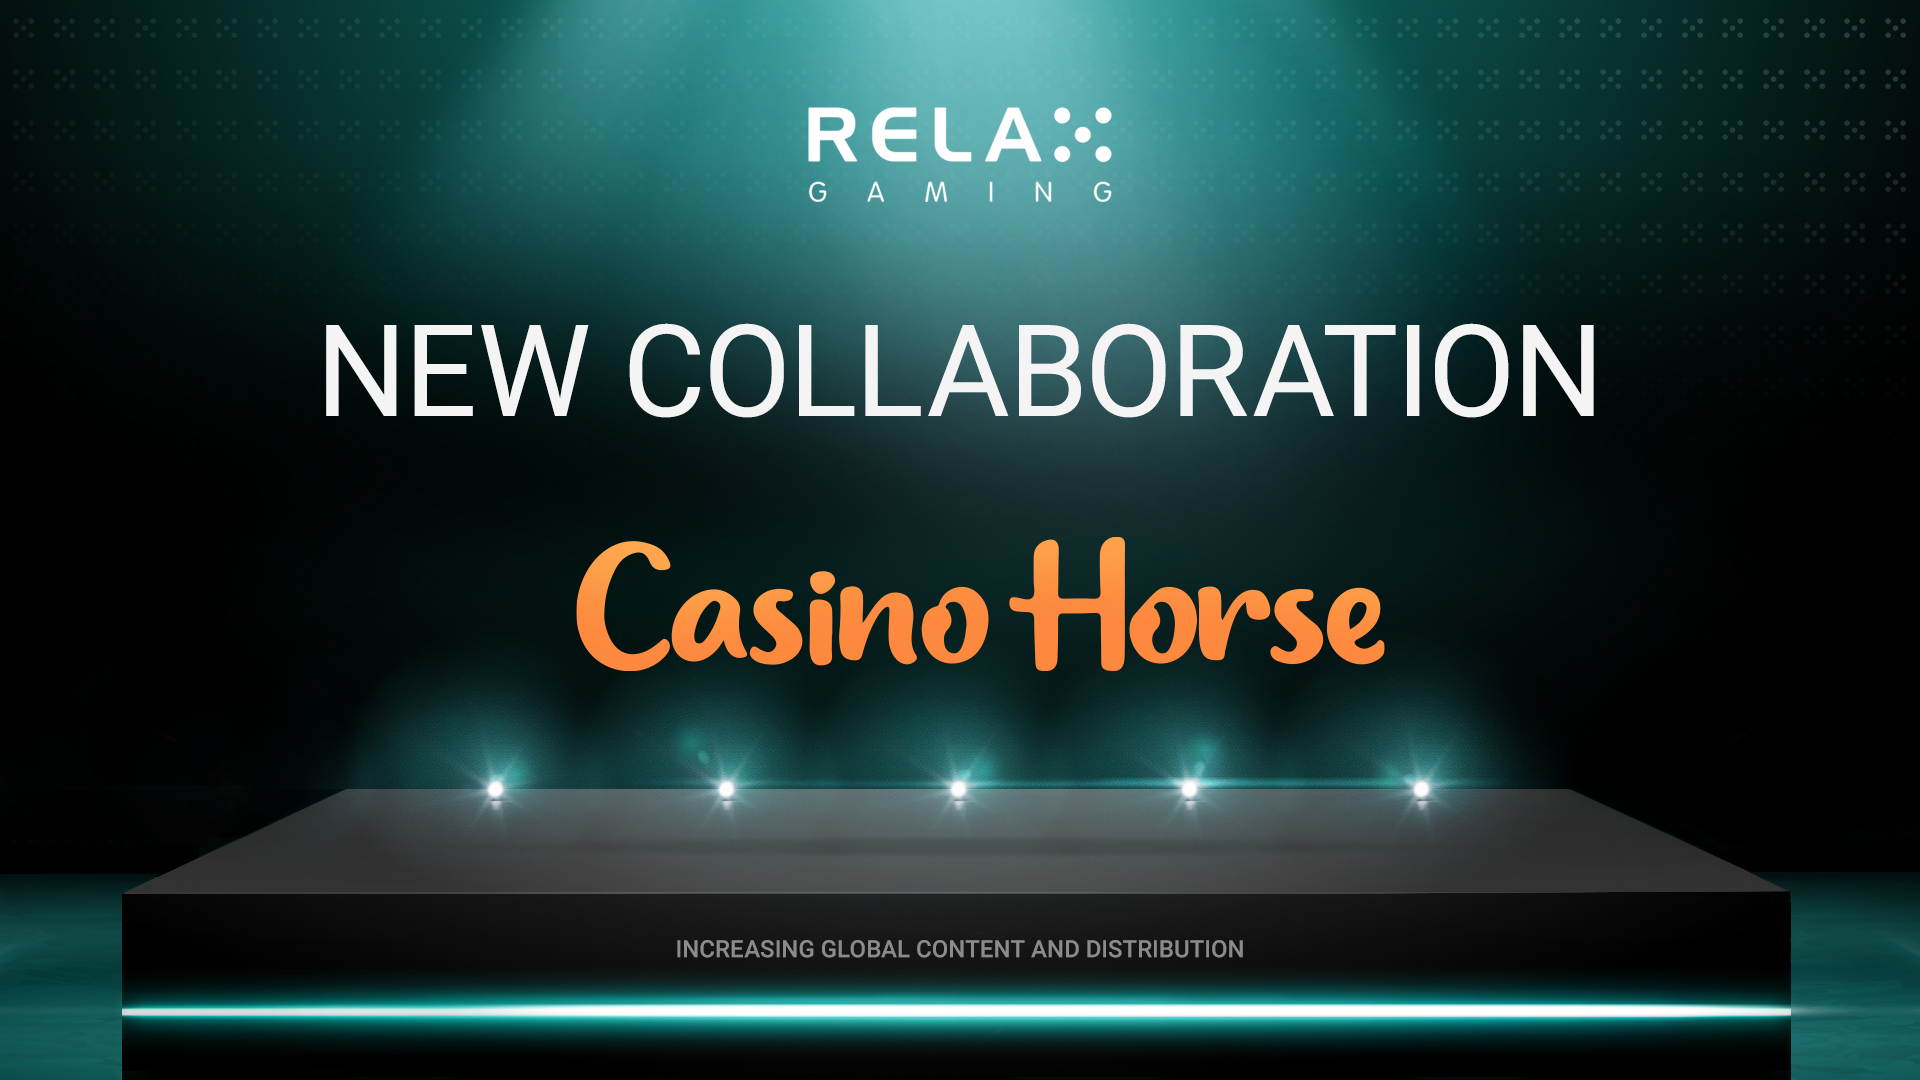 Relax Gaming Teams up with Casino Horse